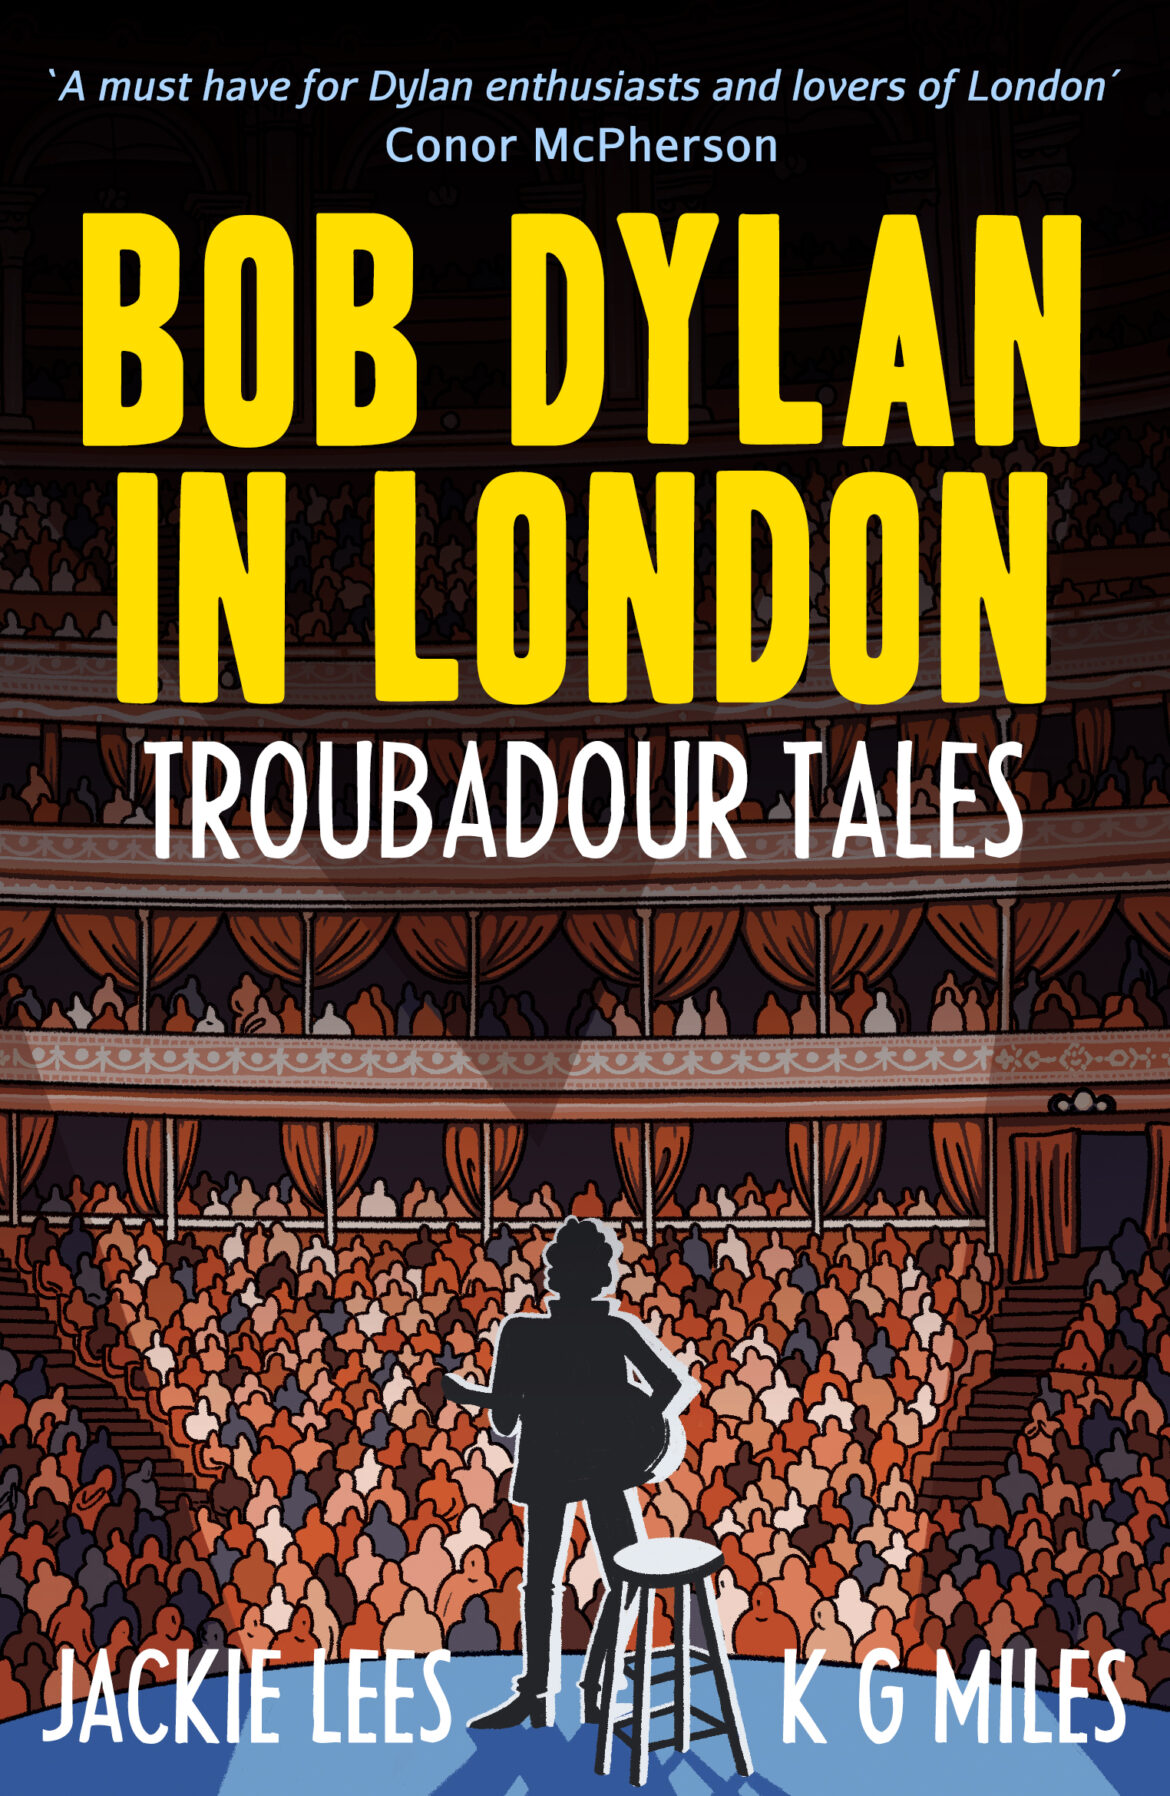 BOOK REVIEW: Bob Dylan in London: Troubadour Tales by Jackie Lees and K G Miles